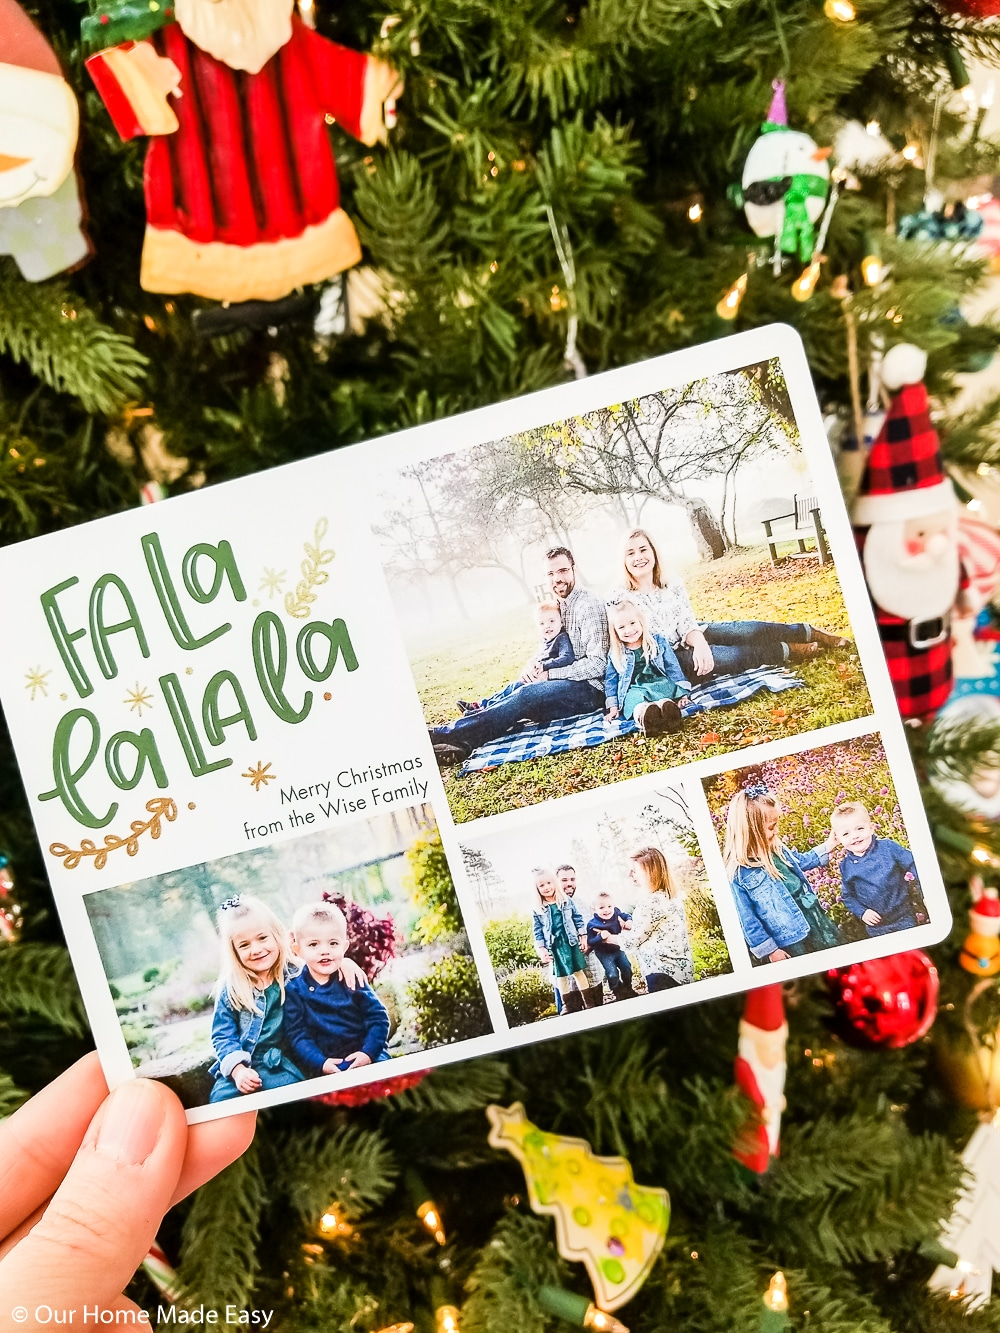 Family Christmas card in front of Christmas tree